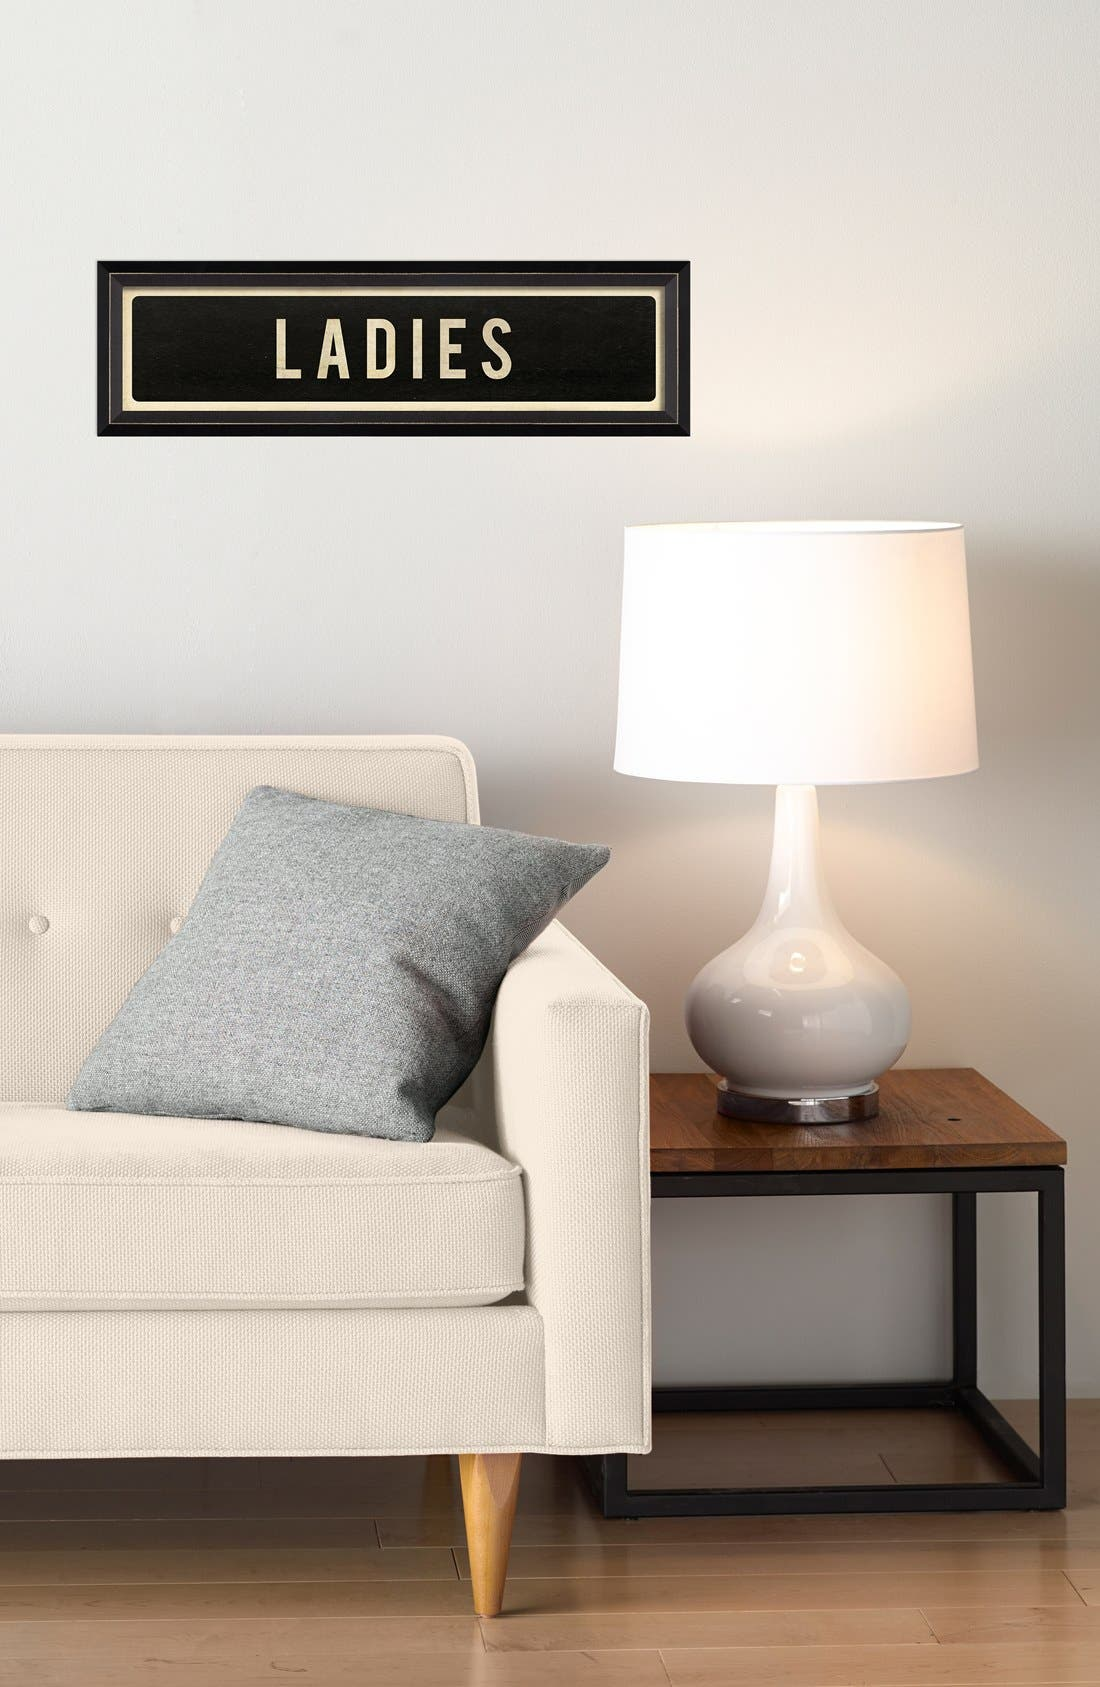 Alternate Image 2  - Spicher and Company 'Ladies' Vintage Look Sign Artwork